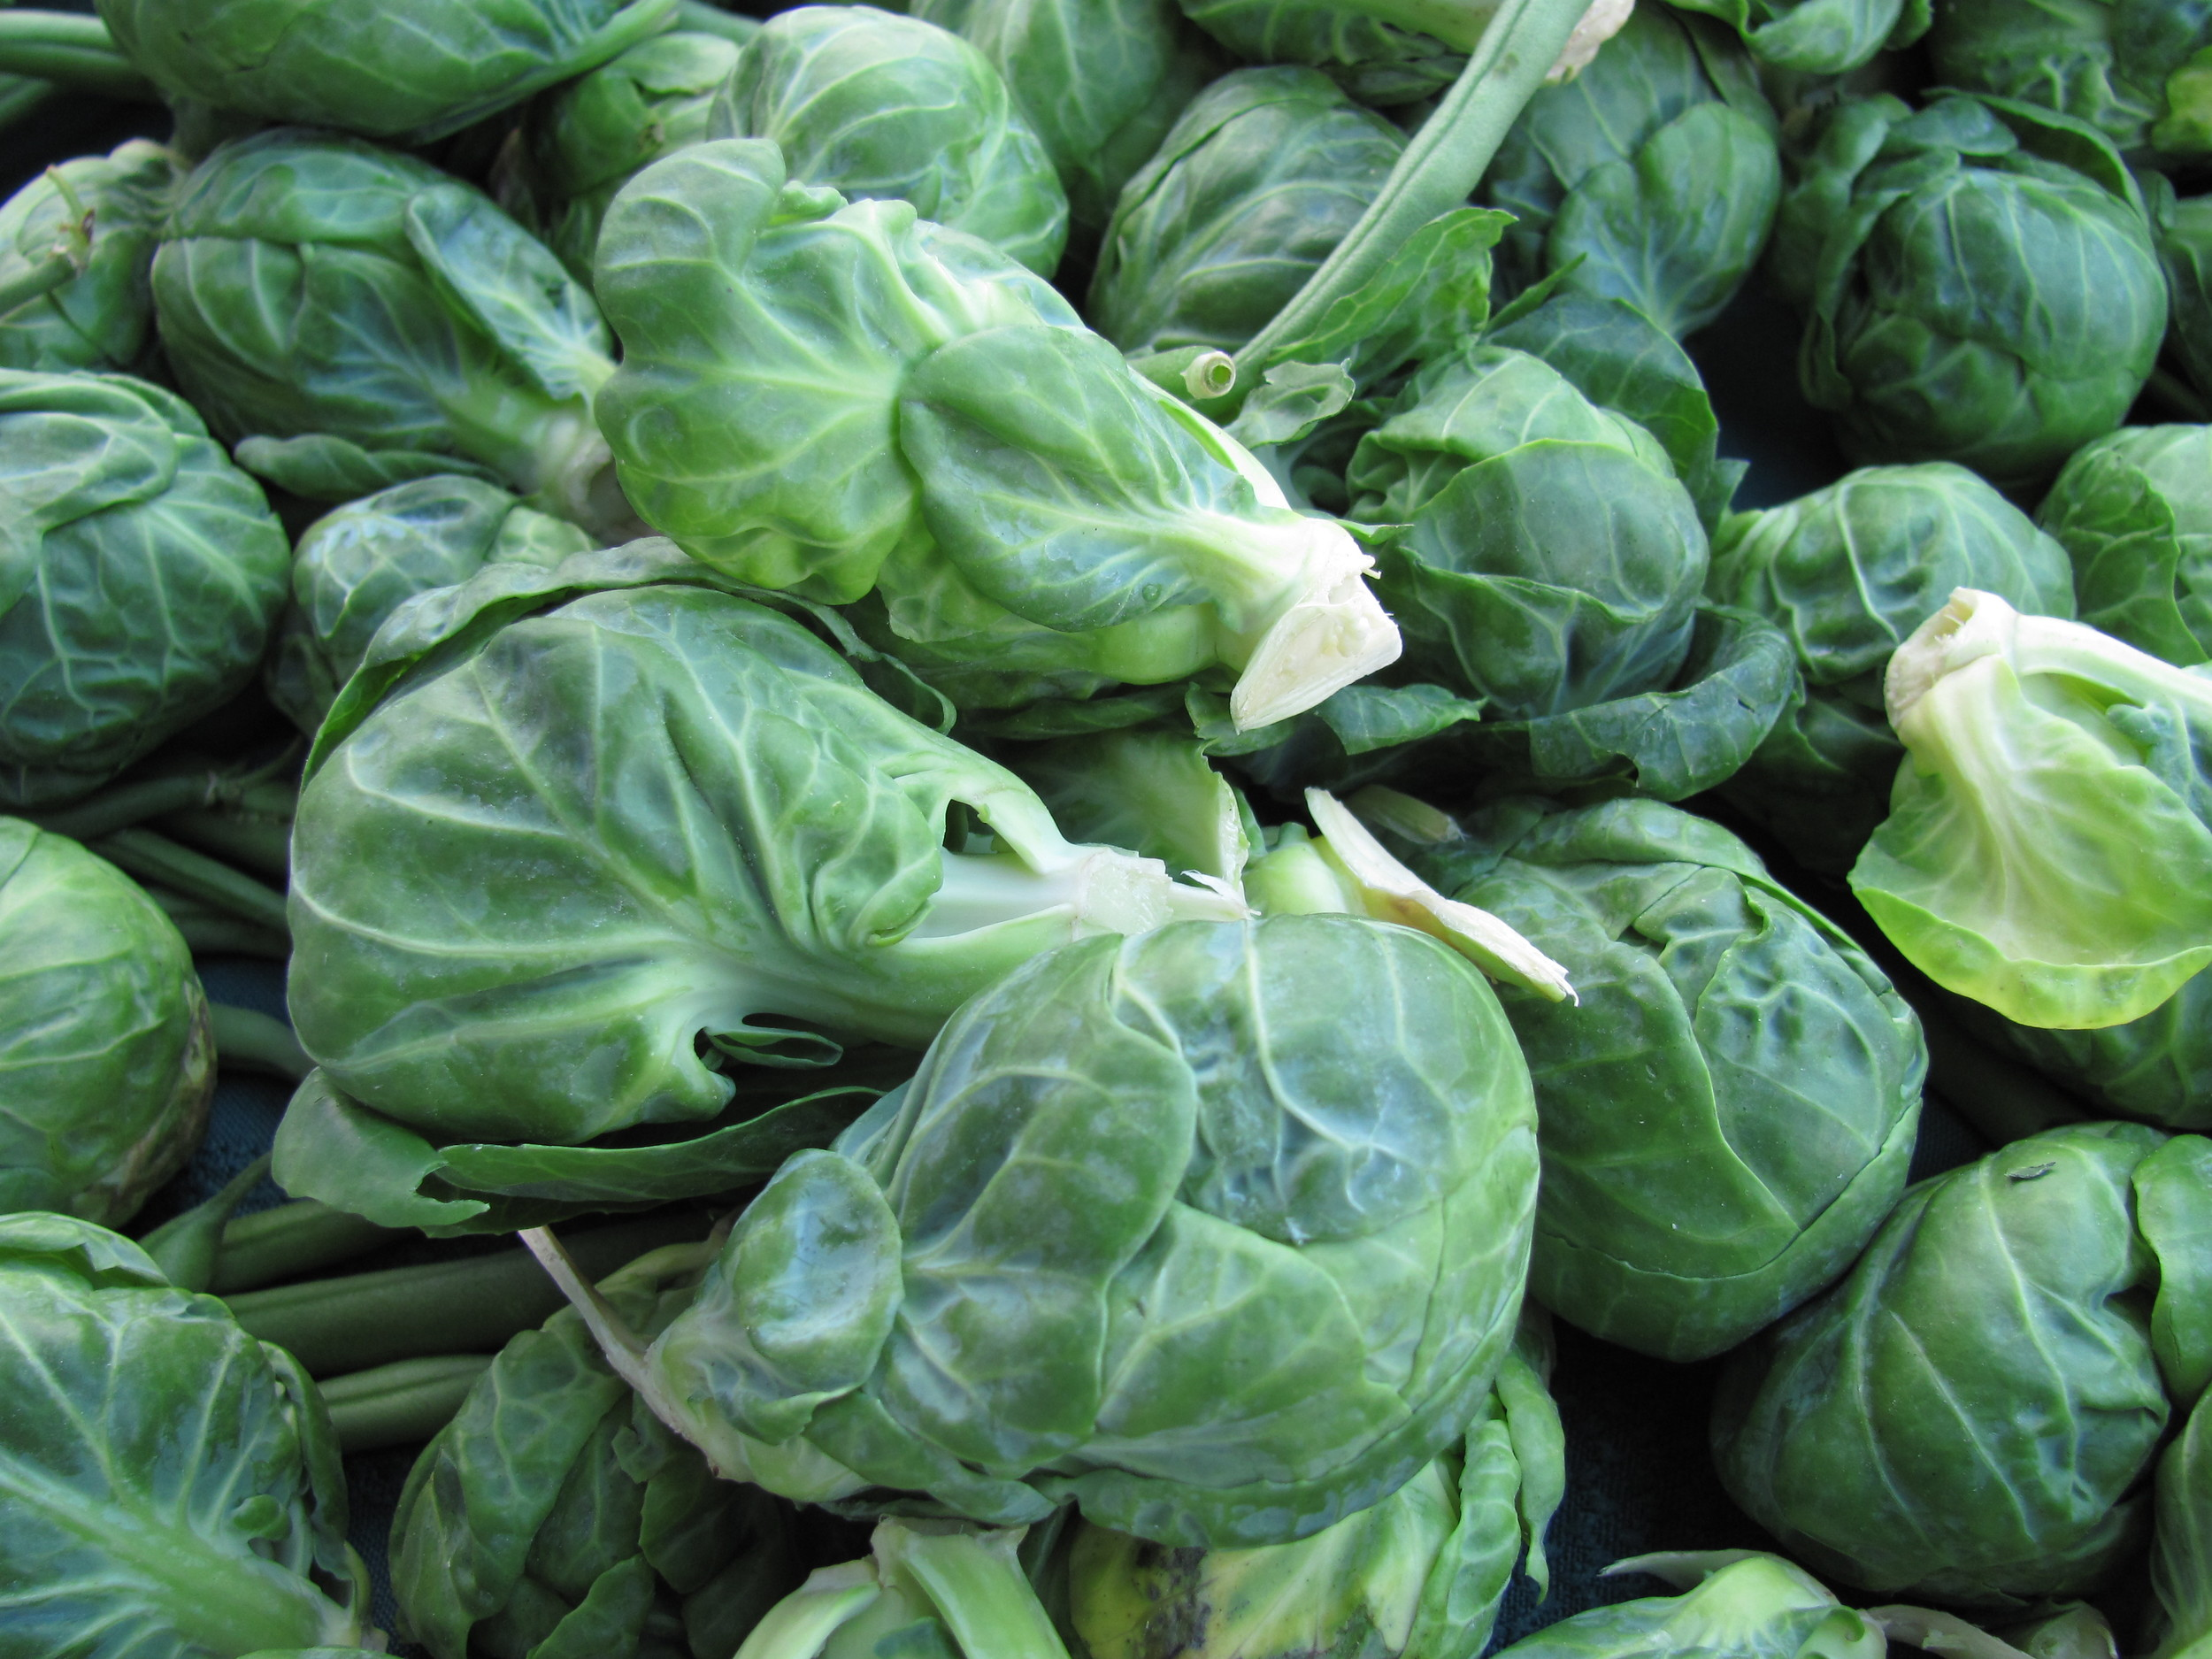 Saratoga Farmers Market brussels sprouts